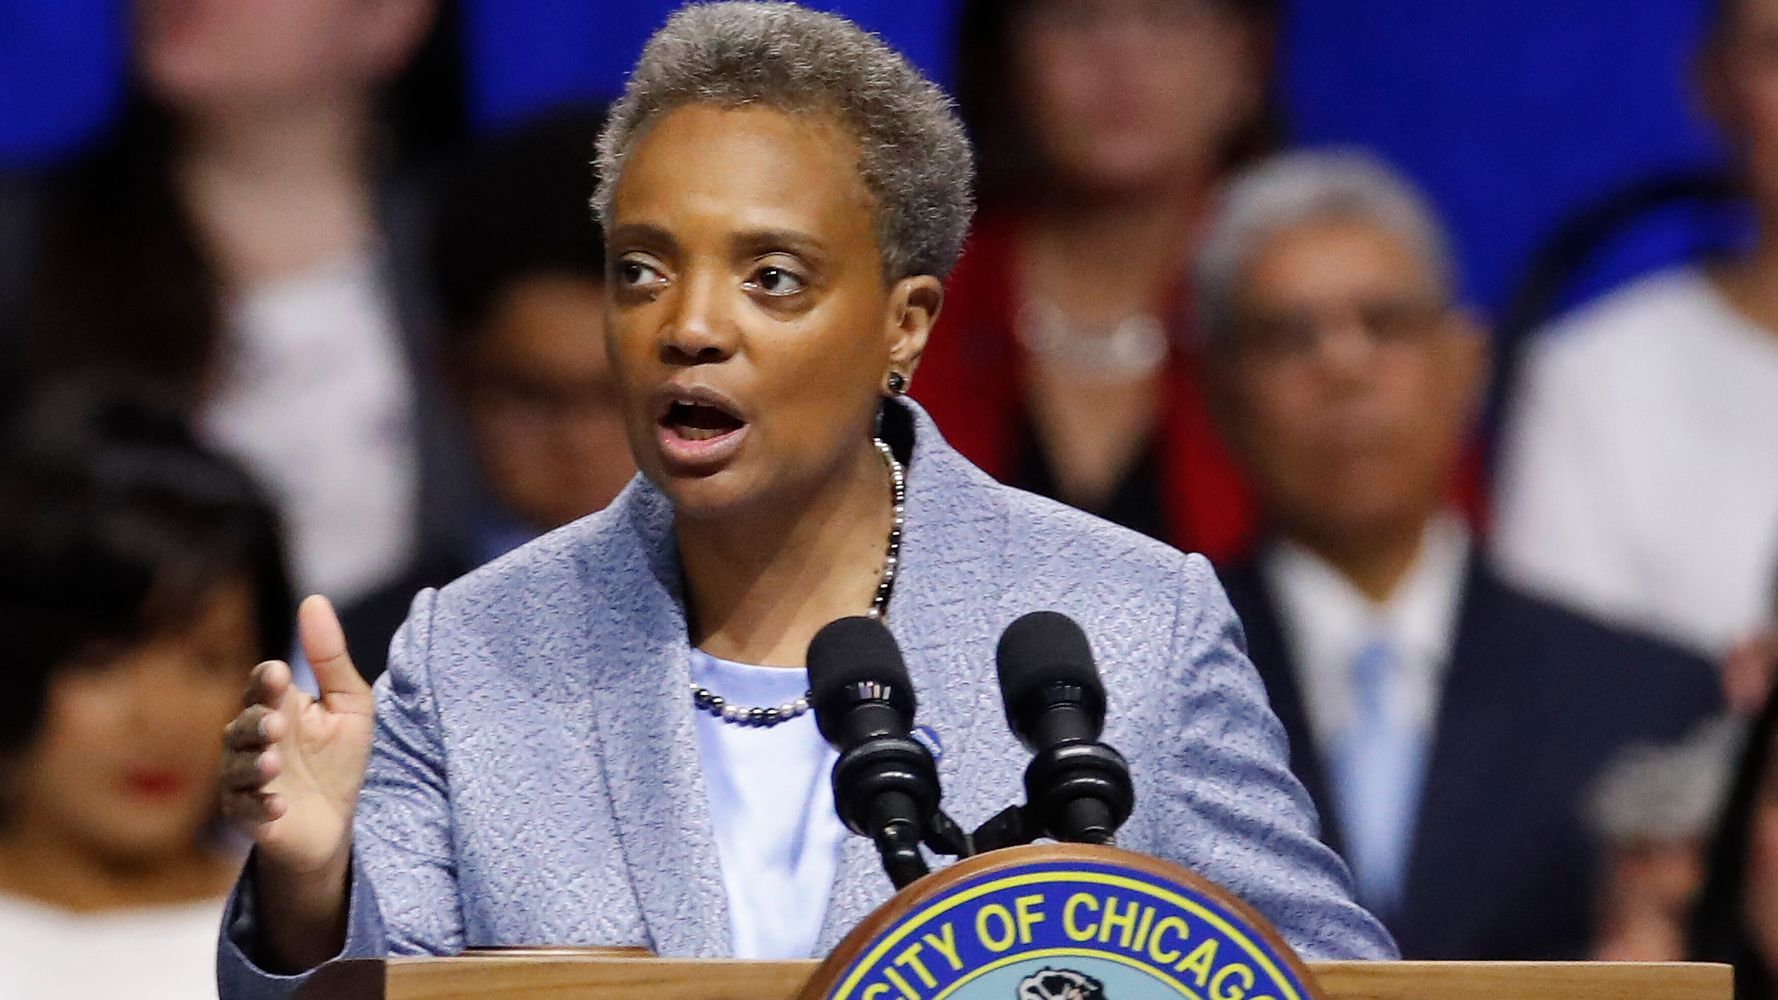 Chicago Mayor Permanently Bans ICE From Accessing Police Databases